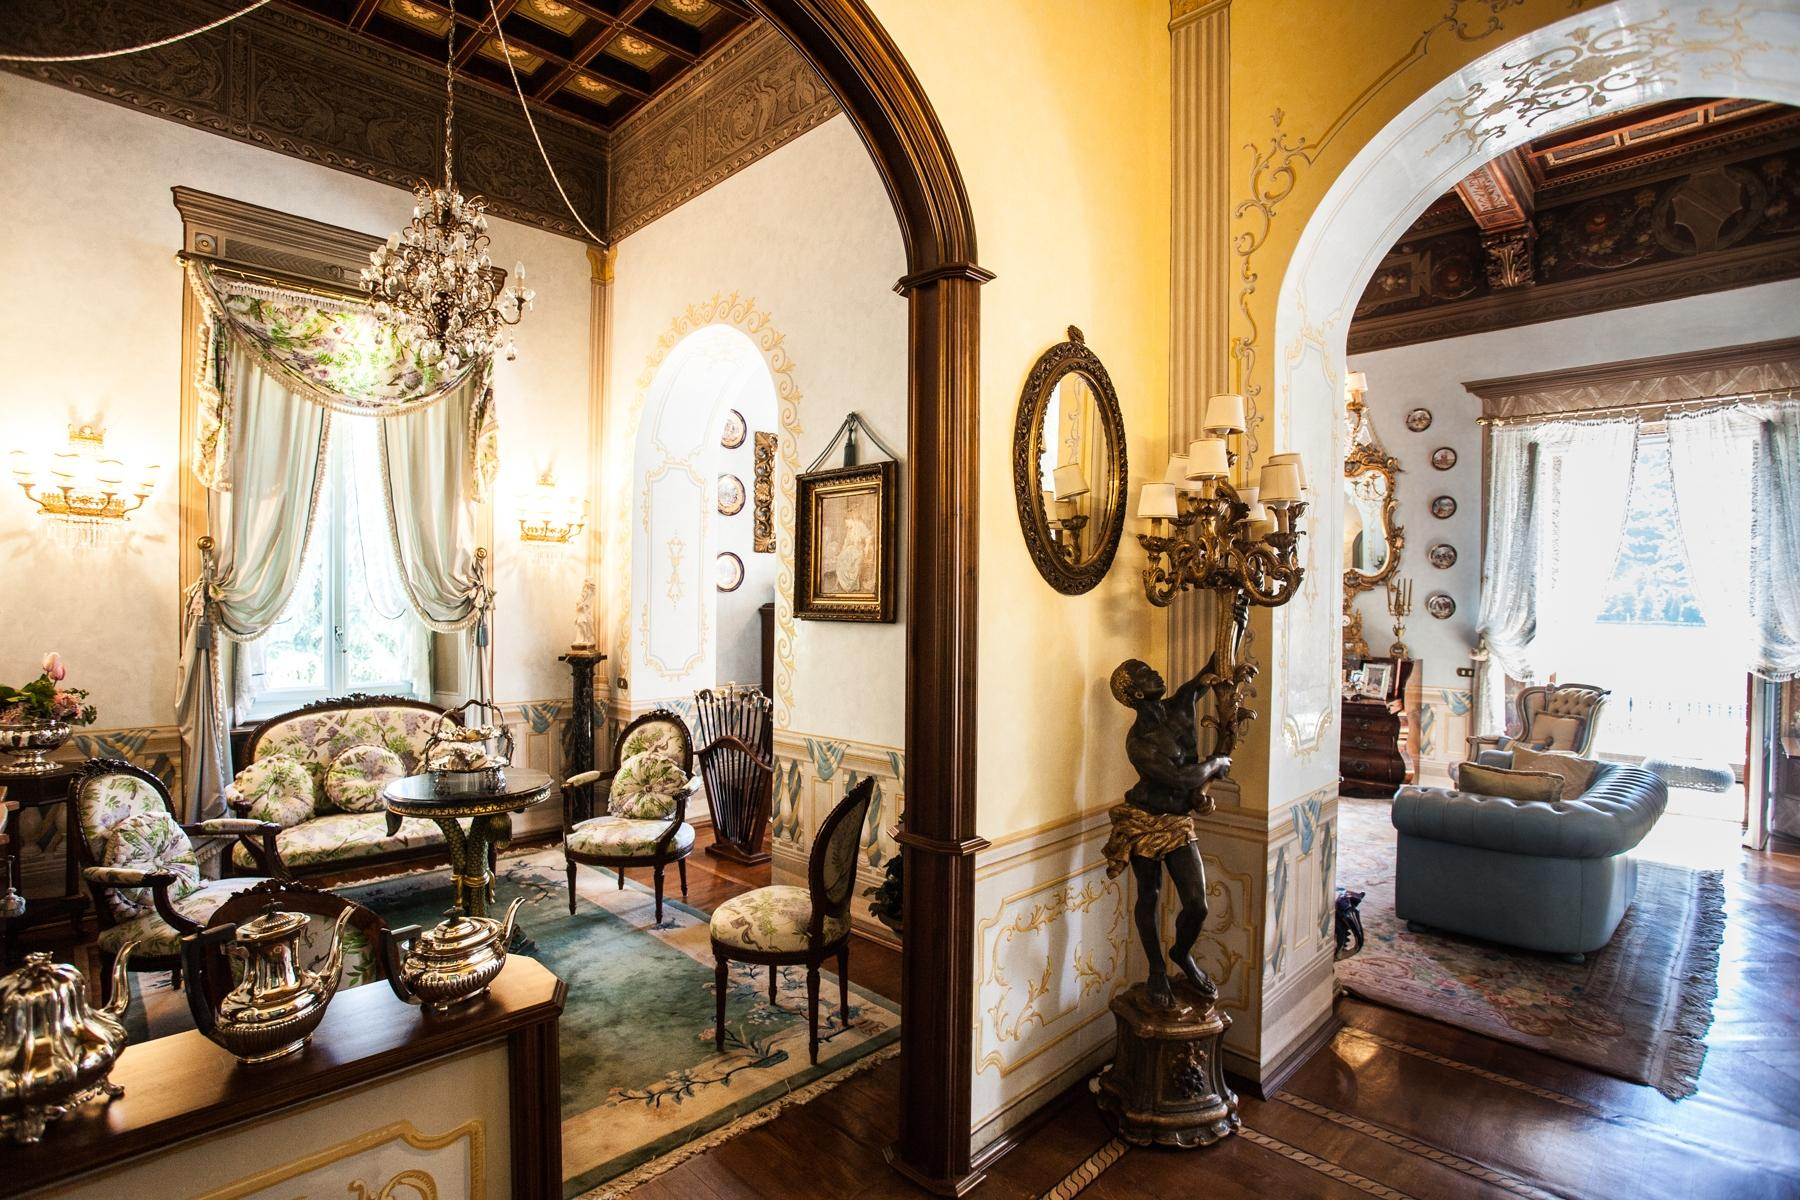 Charming historic villa with private park - 11